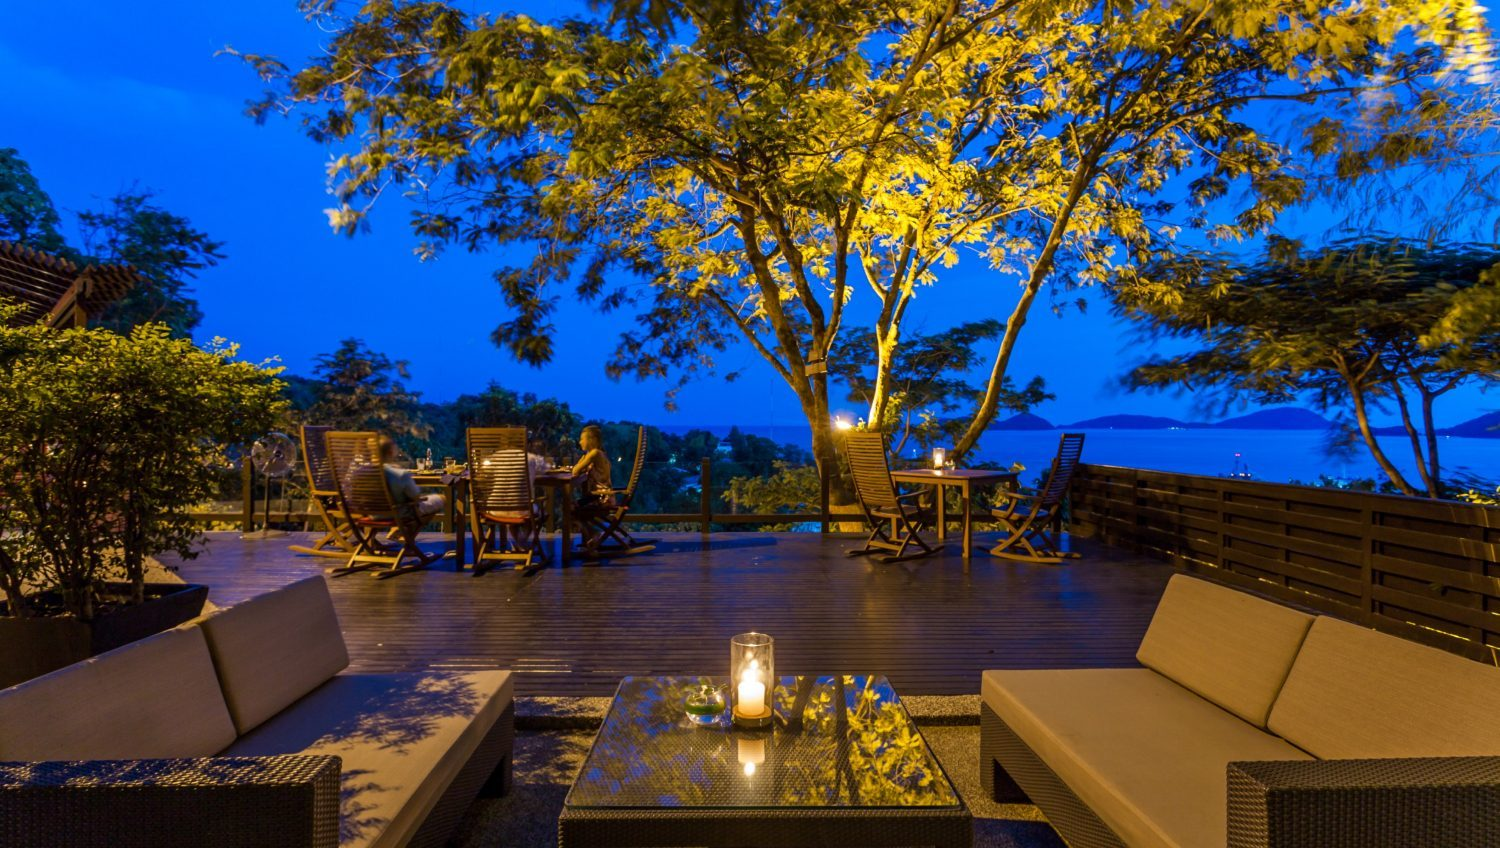 12-Baba-Soul-Food-Thai-Cuisine-Best-Restaurant-in-Phuket